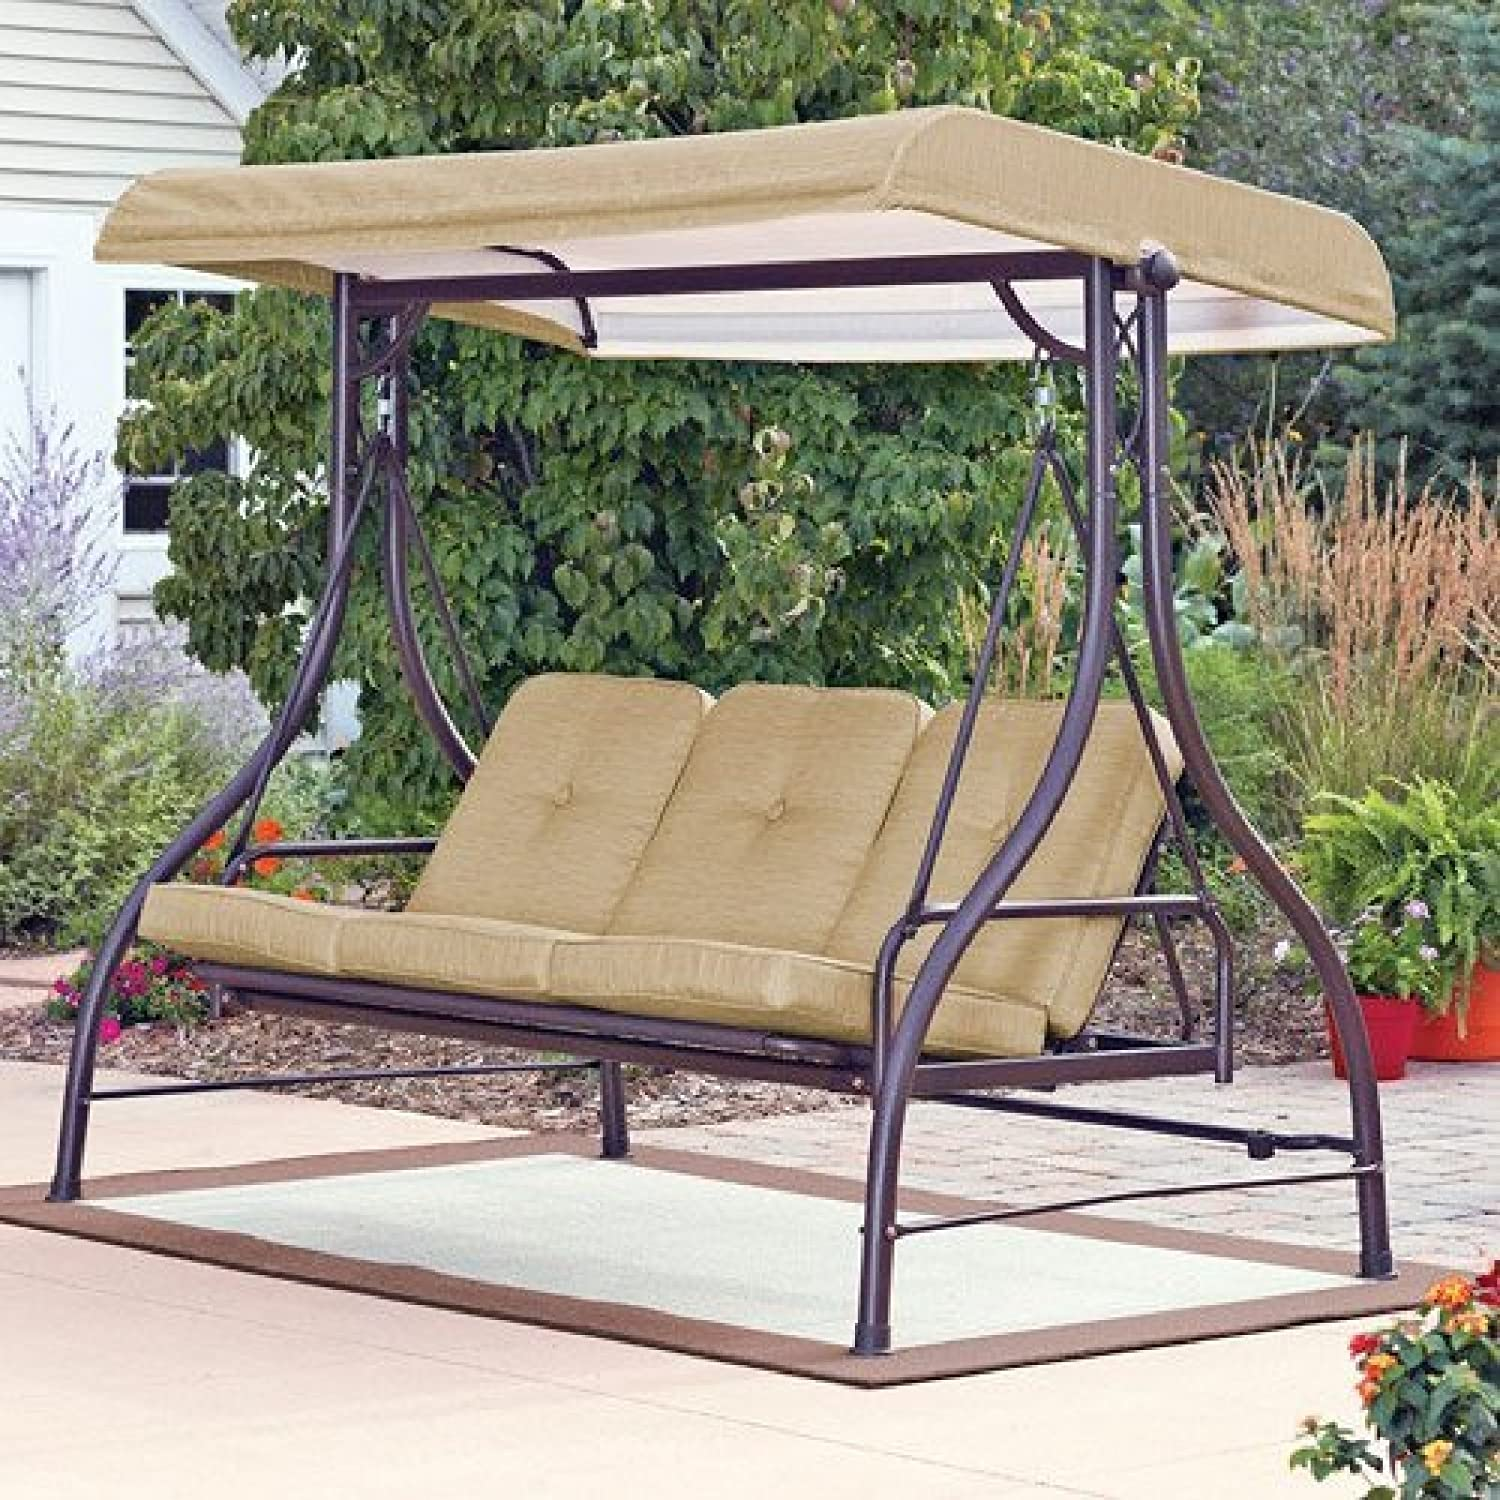 Beau 750 Lbs Capacity Porch Swing Mainstays